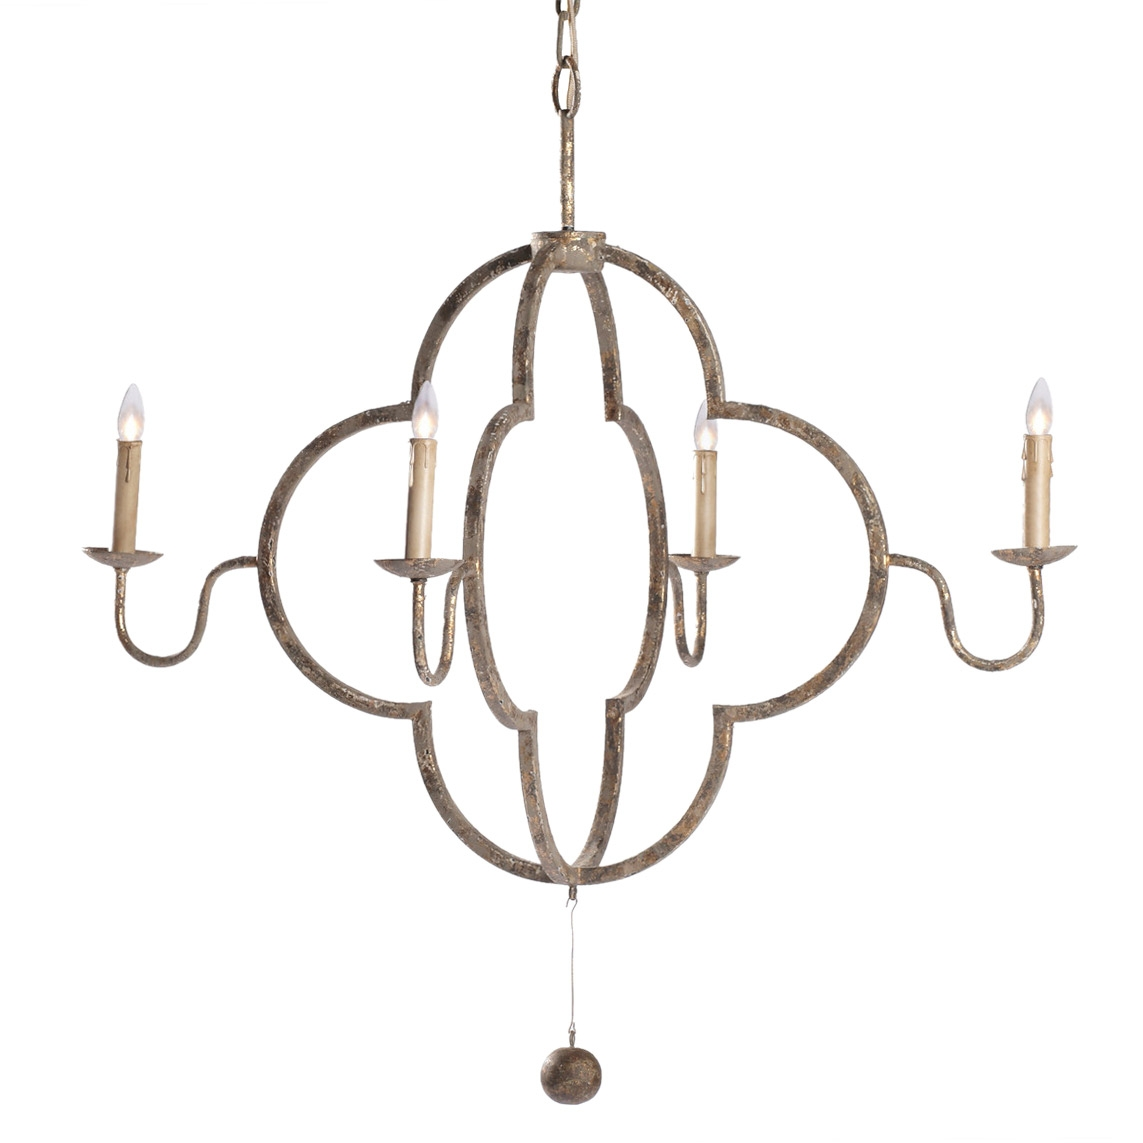 French Country Lighting Style Chandeliers Table Lamps Wall Pertaining To French Chandeliers (Image 12 of 15)